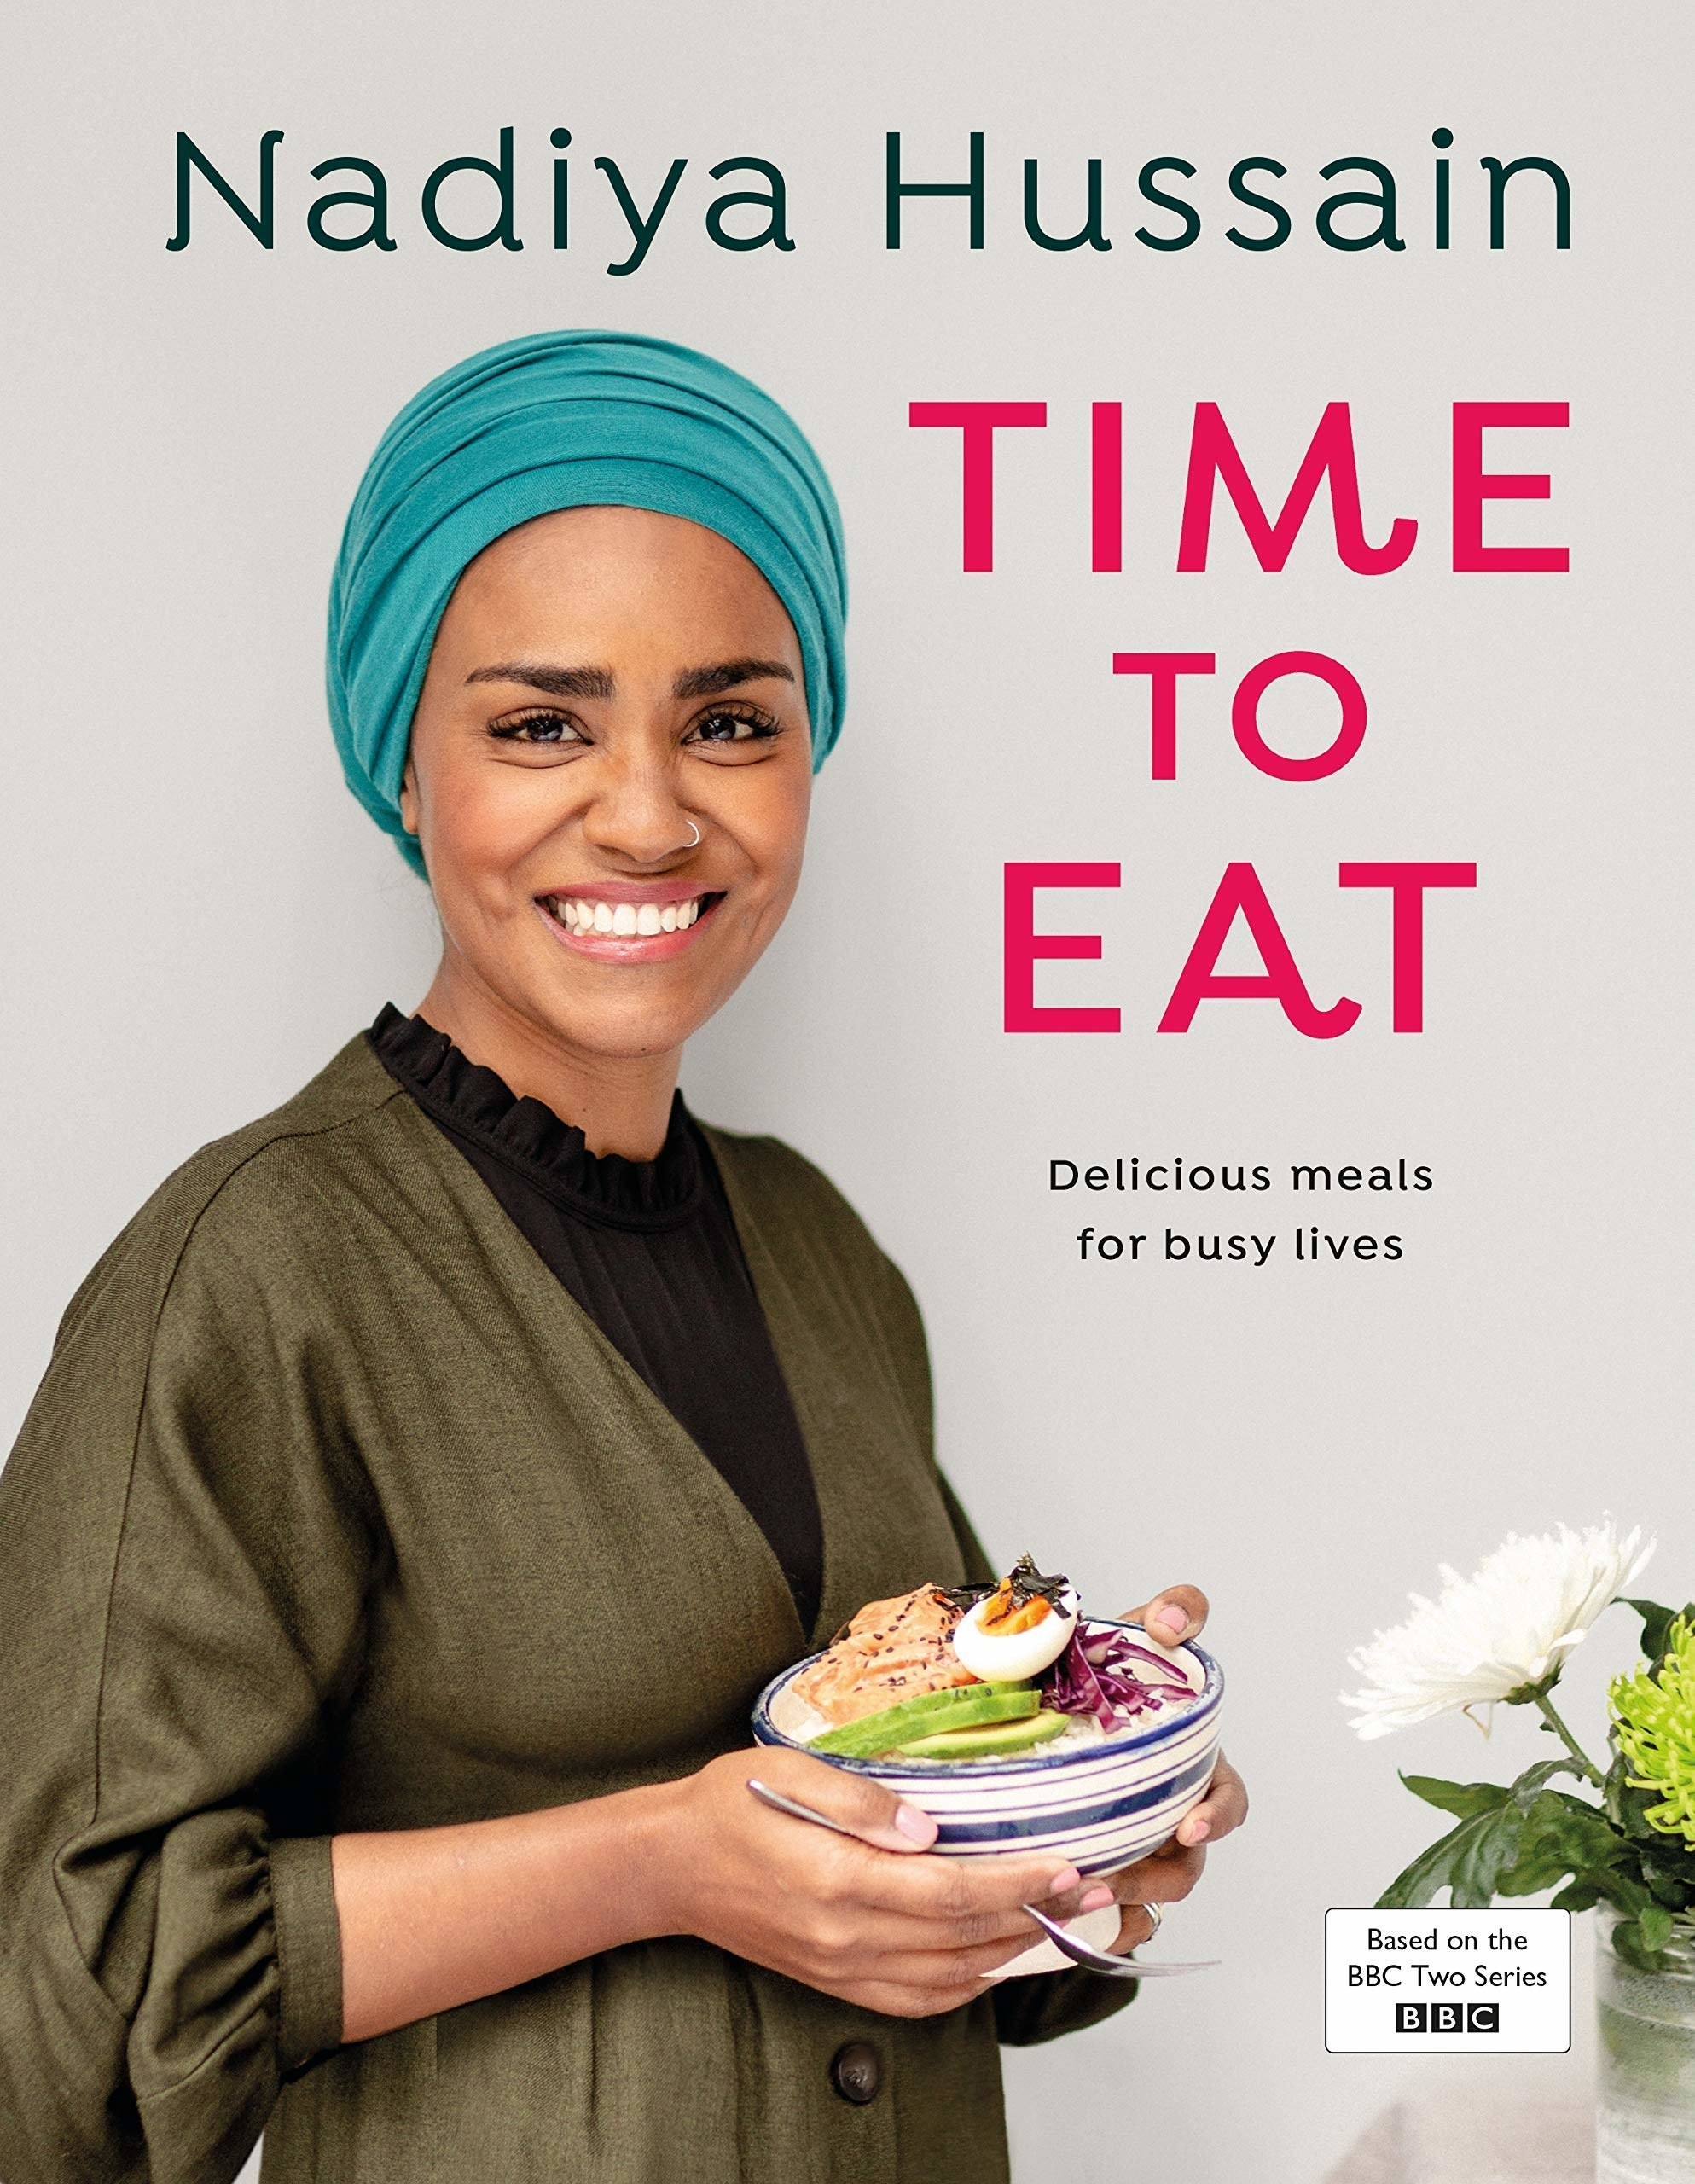 The cover of 'Time To Eat' by Nadiya Hussain